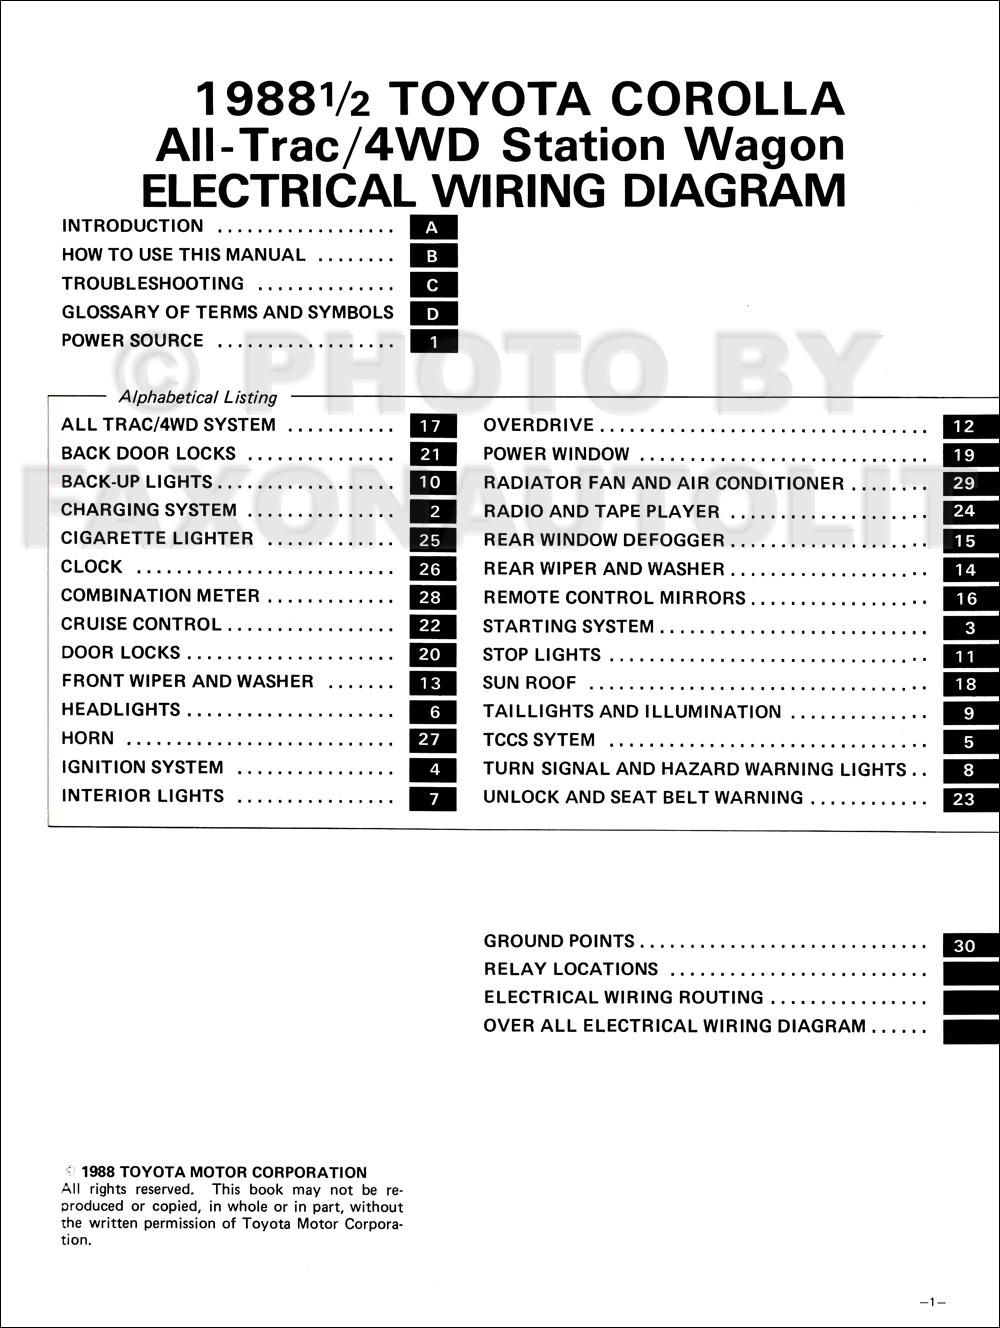 1988 Toyota Corolla All-Trac/4WD Station Wagon Wiring Diagram Manual  Original · Table of Contents